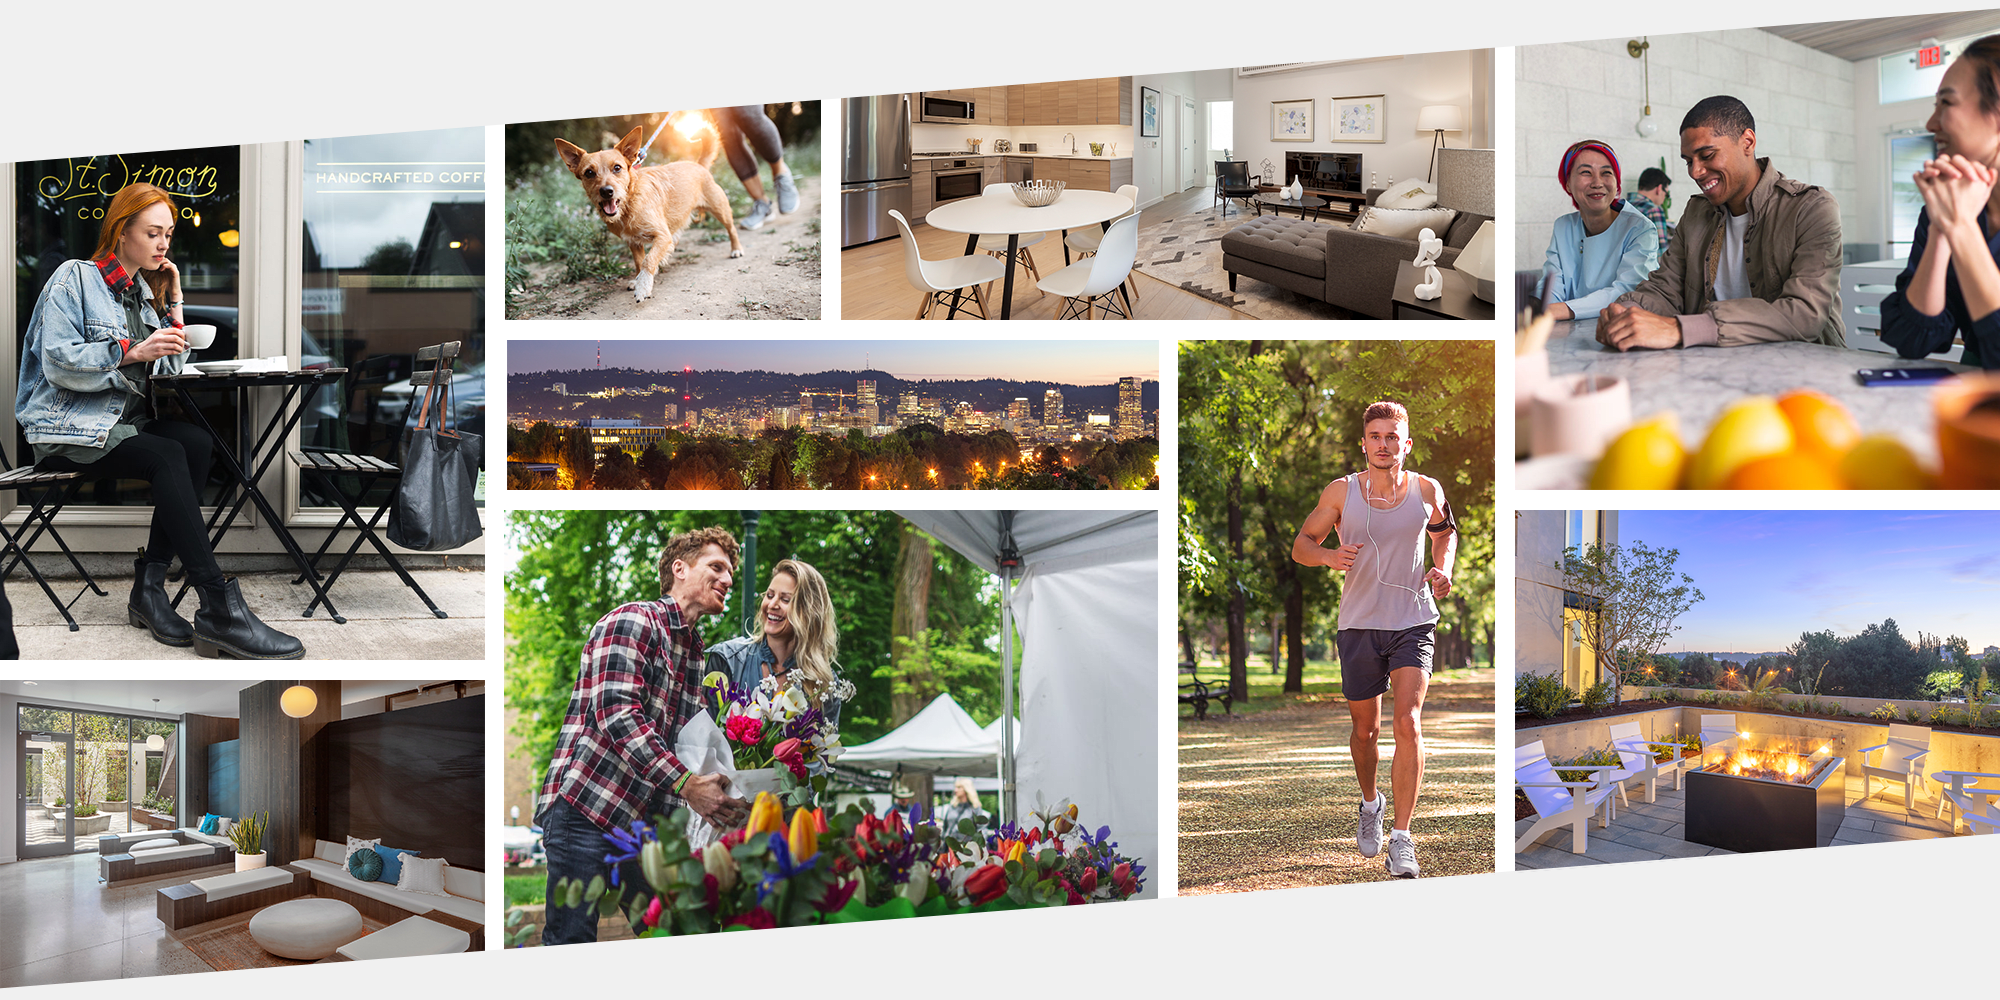 Collage of images displaying the spirit of our neighborhood at TwentyTwenty Apartments in Portland, Oregon